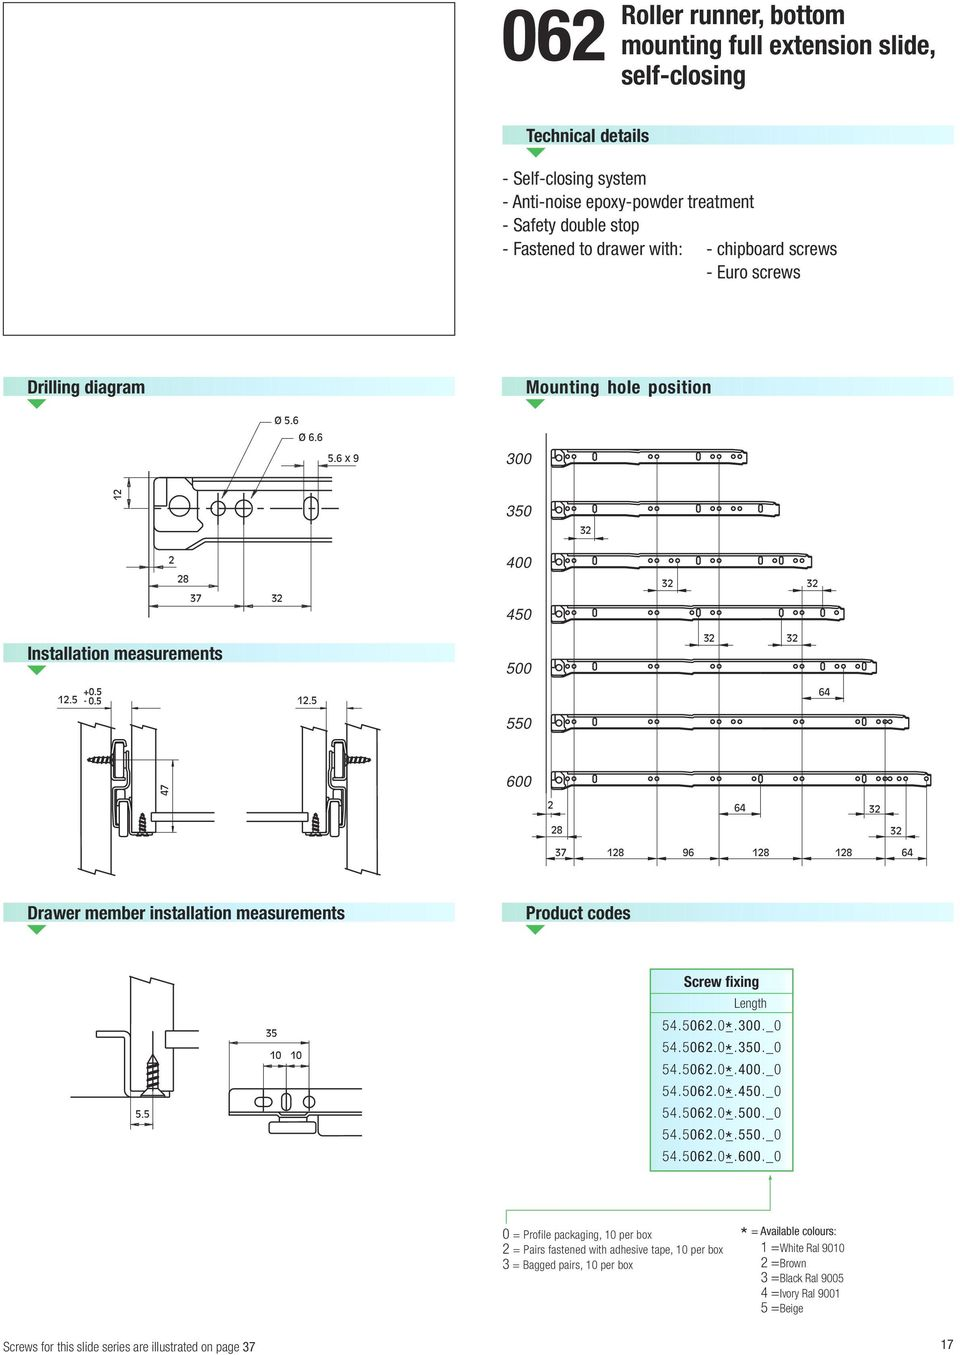 5 64 47 2 64 28 37 128 96 128 128 64 Drawer member installation measurements Product codes 5.5 35 10 10 Screw fixing 54.5062.0_.